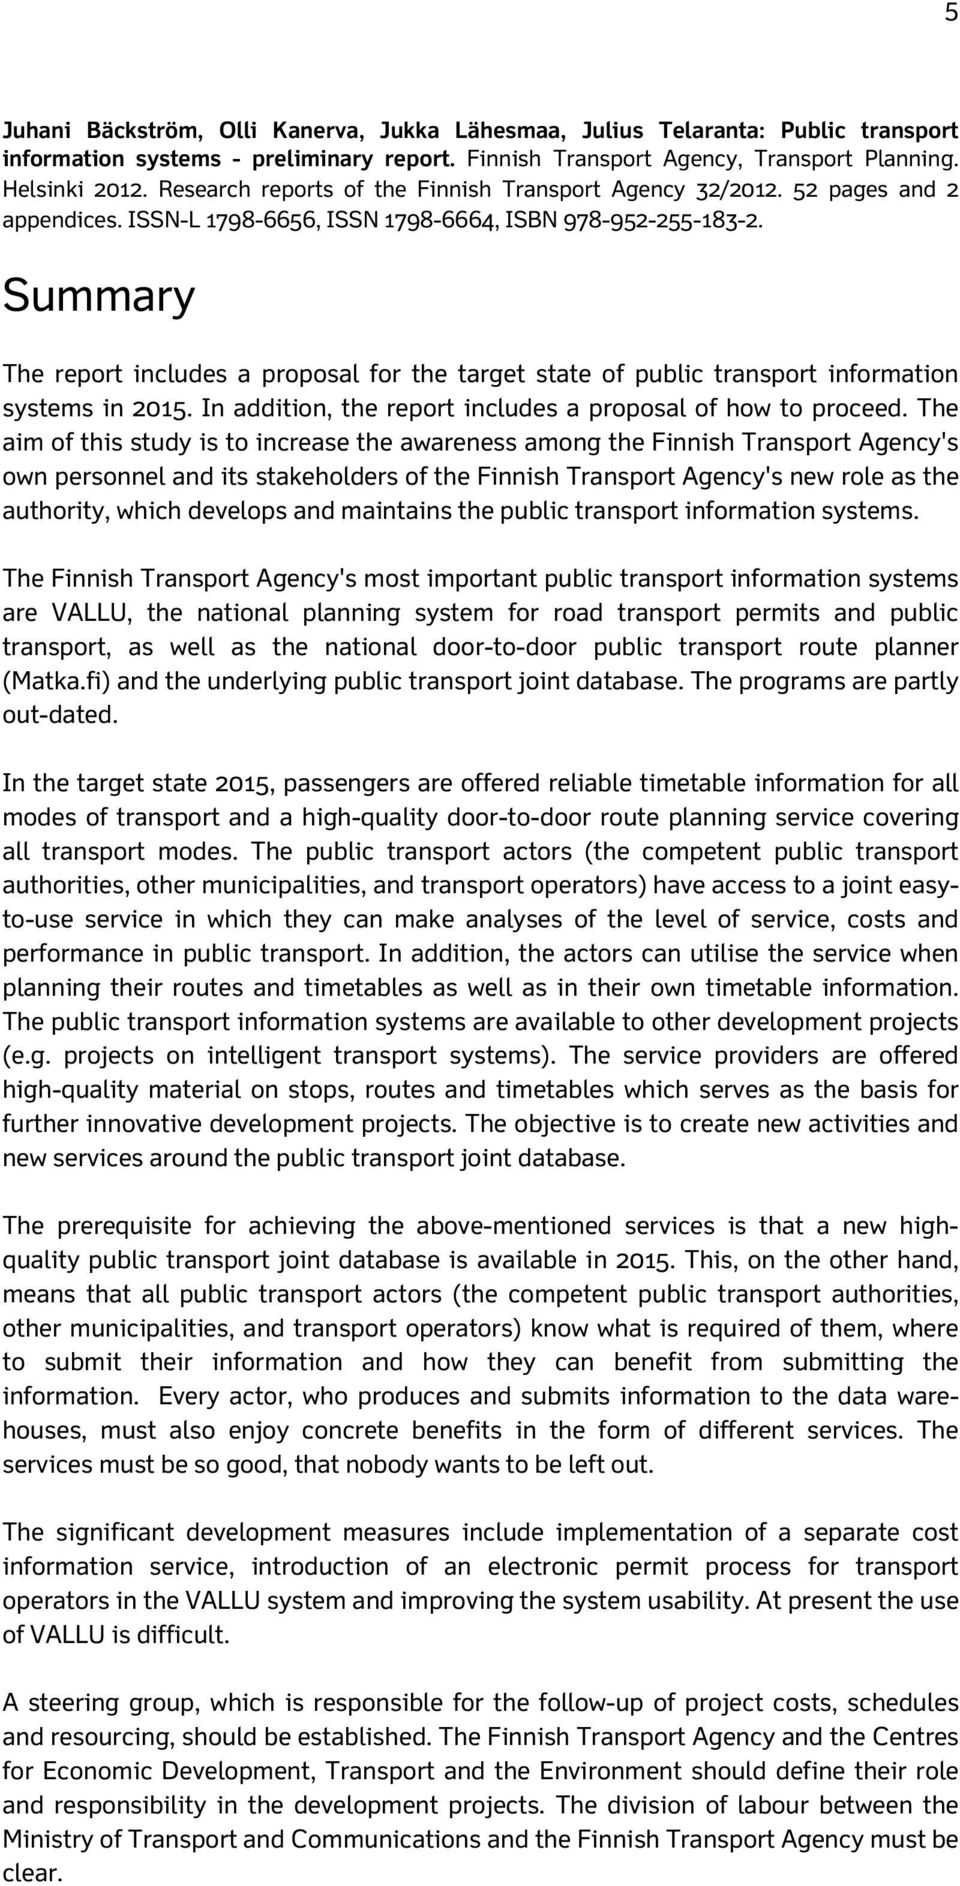 Summary The report includes a proposal for the target state of public transport information systems in 2015. In addition, the report includes a proposal of how to proceed.